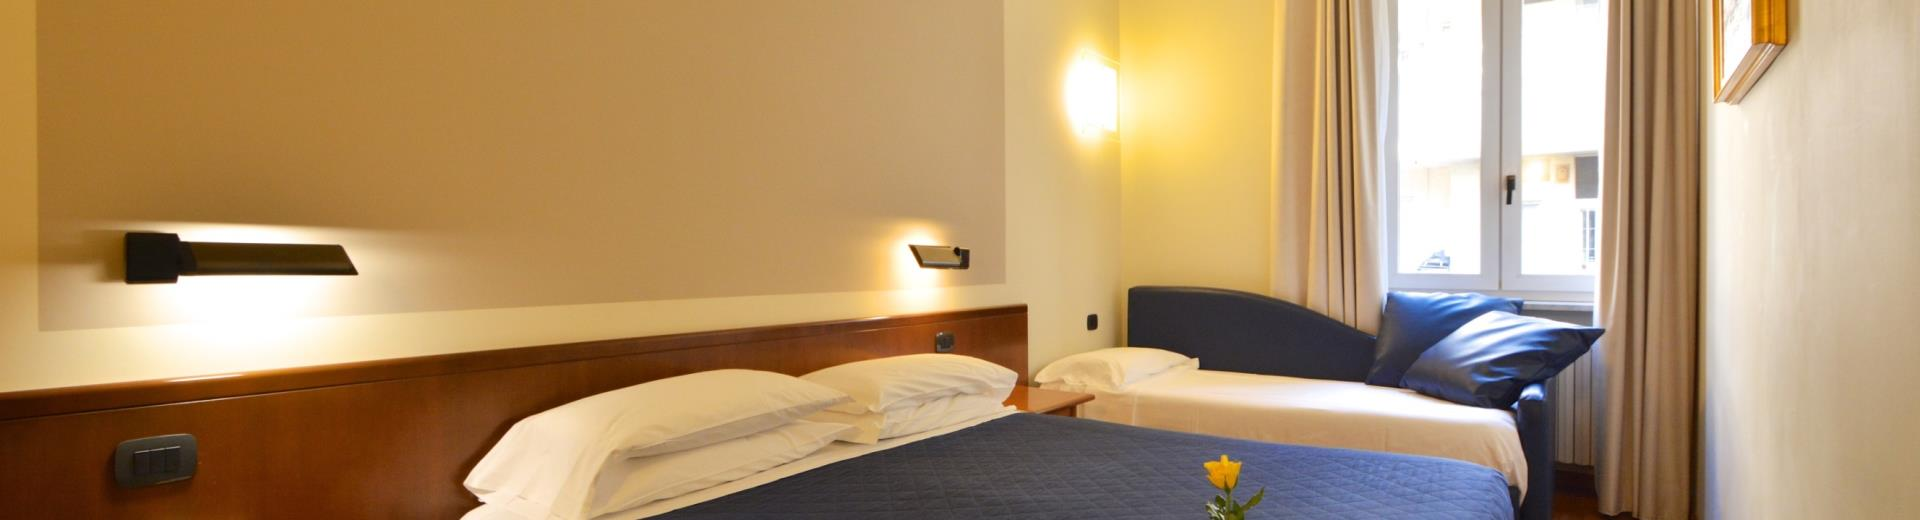 Best Western Hotel Crimea Turin-classic room for three people with wooden flooring and modern bathroom